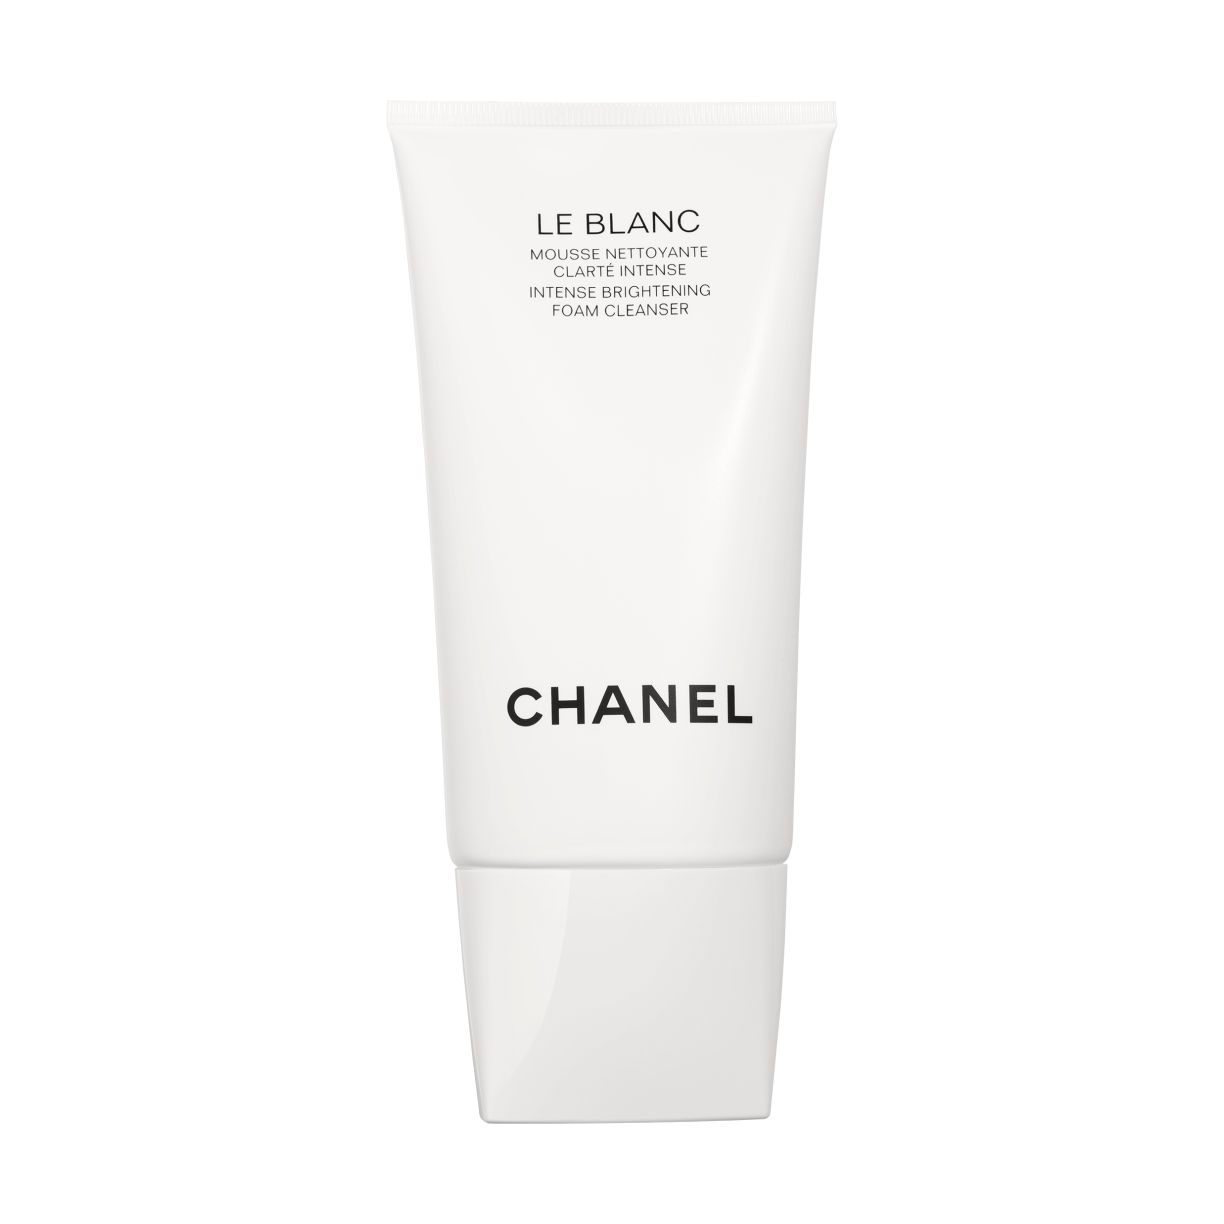 LE BLANC INTENSE BRIGHTENING FOAM CLEANSER 150ml